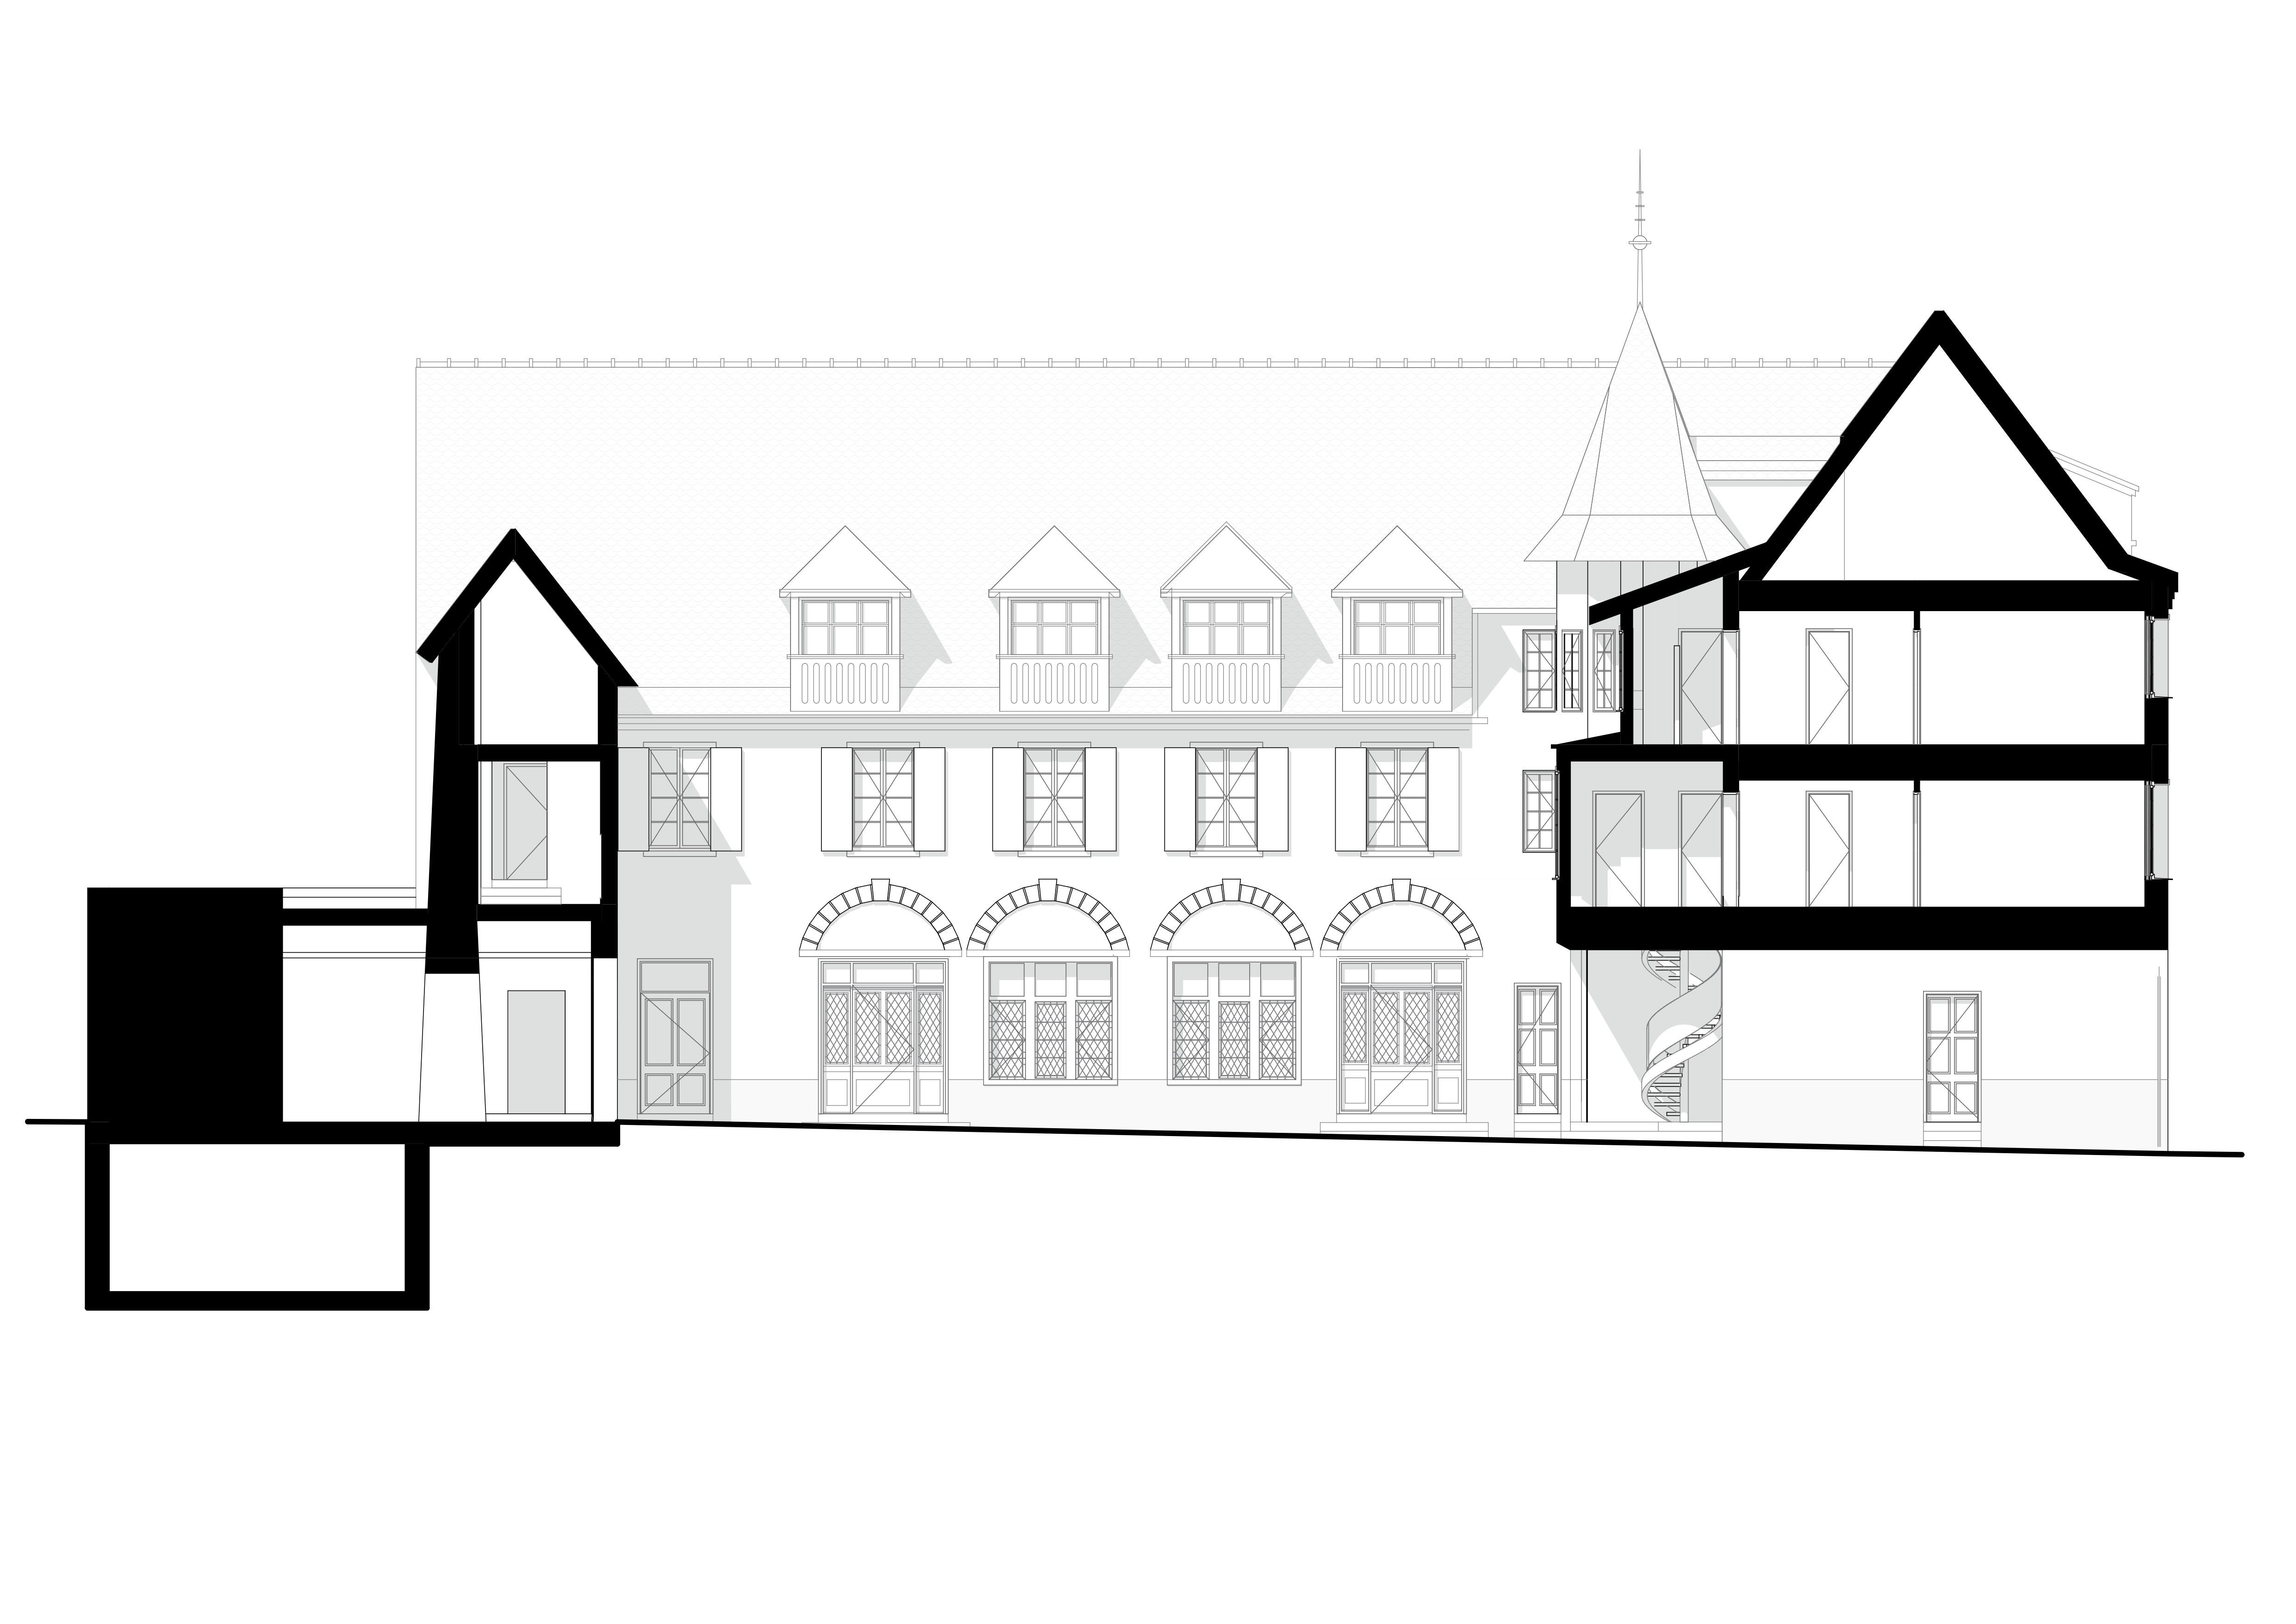 GRDN-F+F-02 facade and section through court